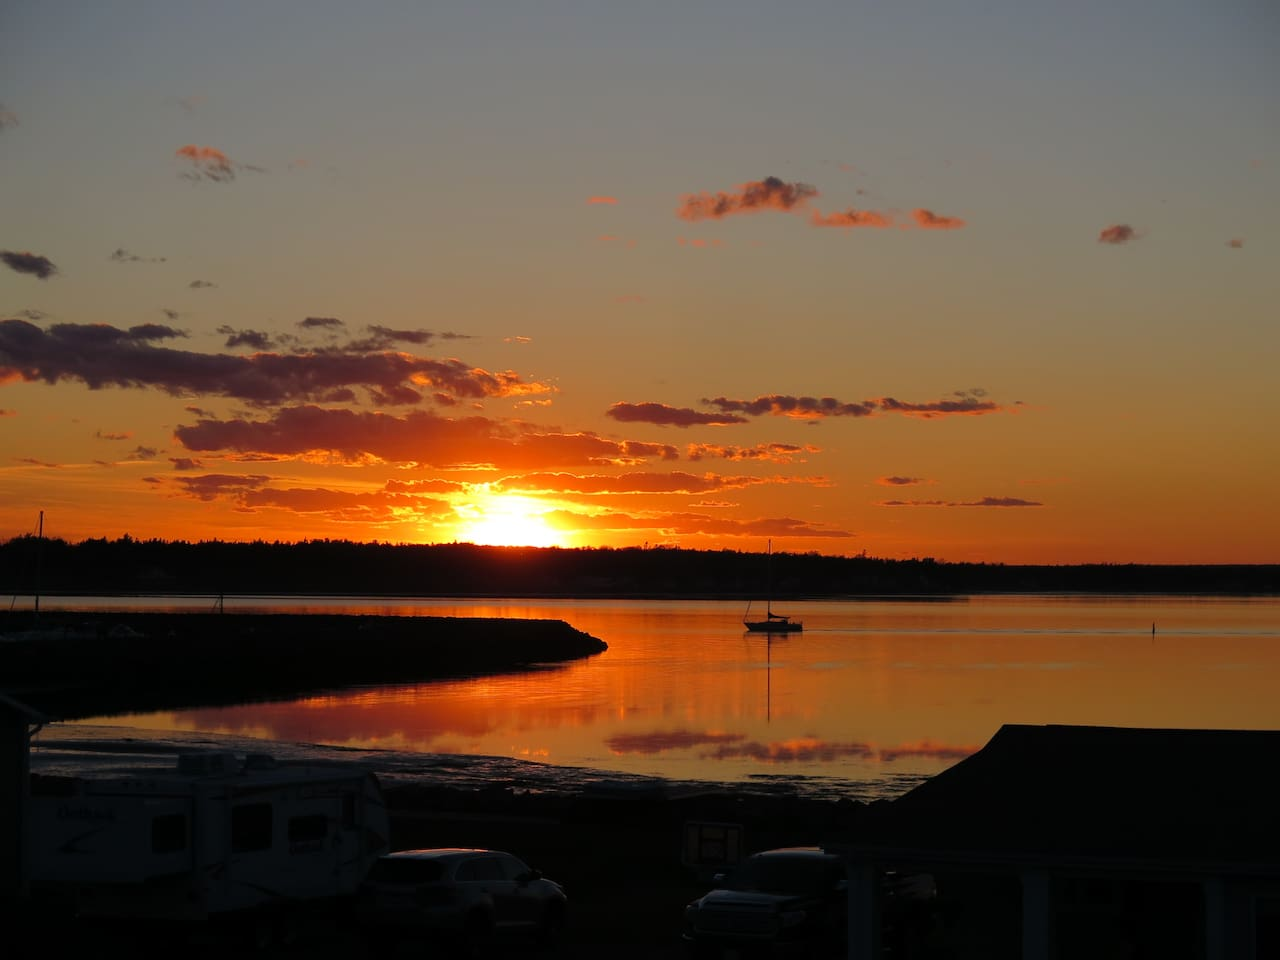 View from balcony of sunset over Shediac Bay Yacht Club.